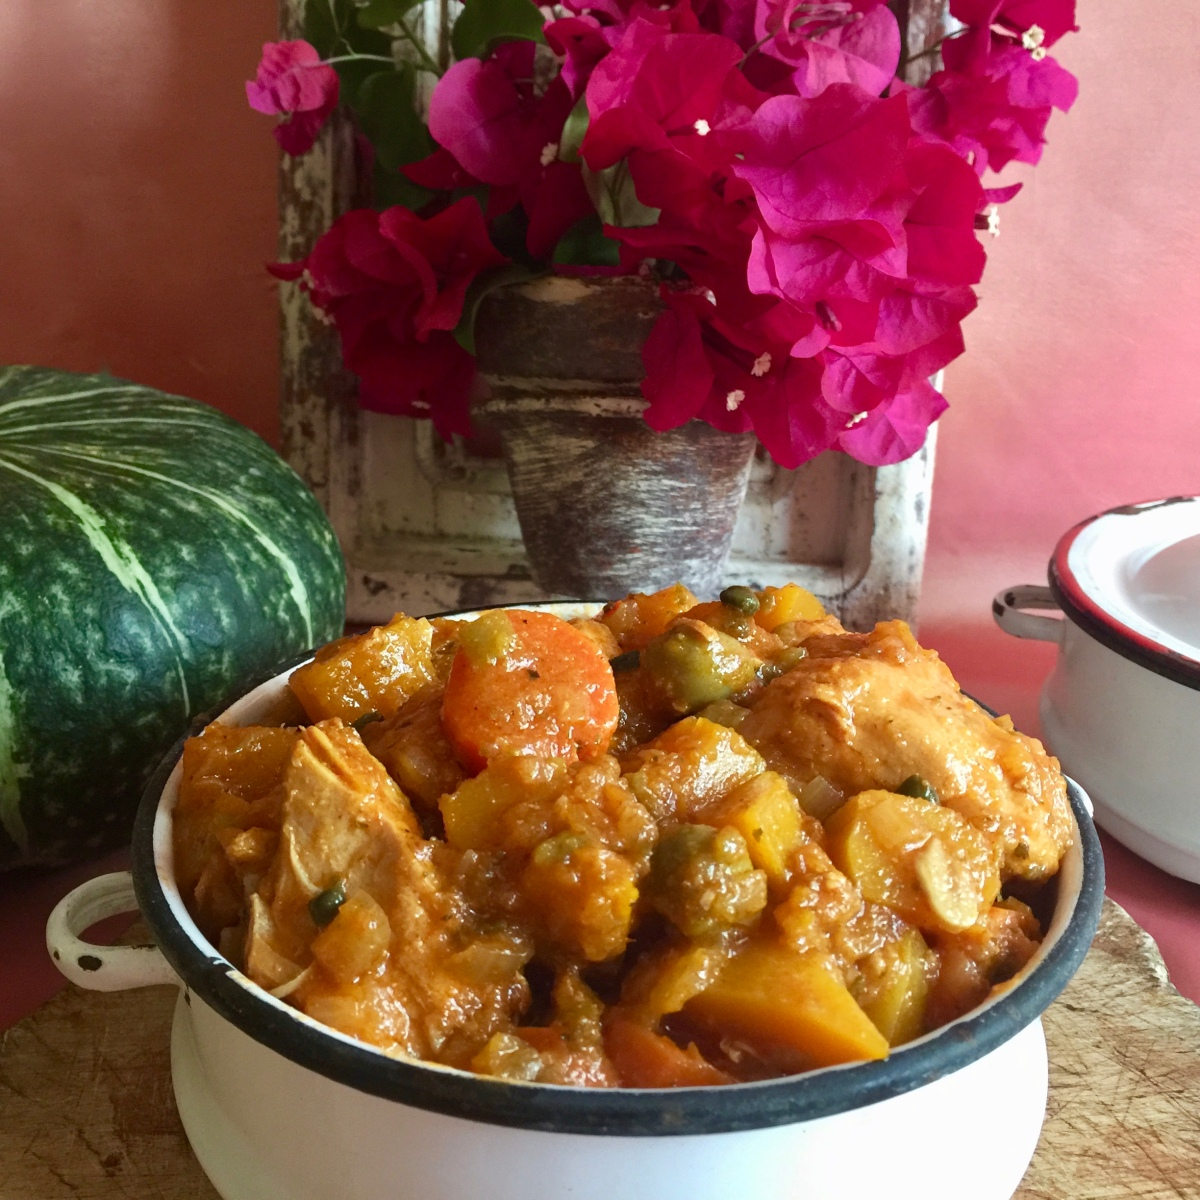 Puerto Rican Chicken Stew or Pollo en Fricase